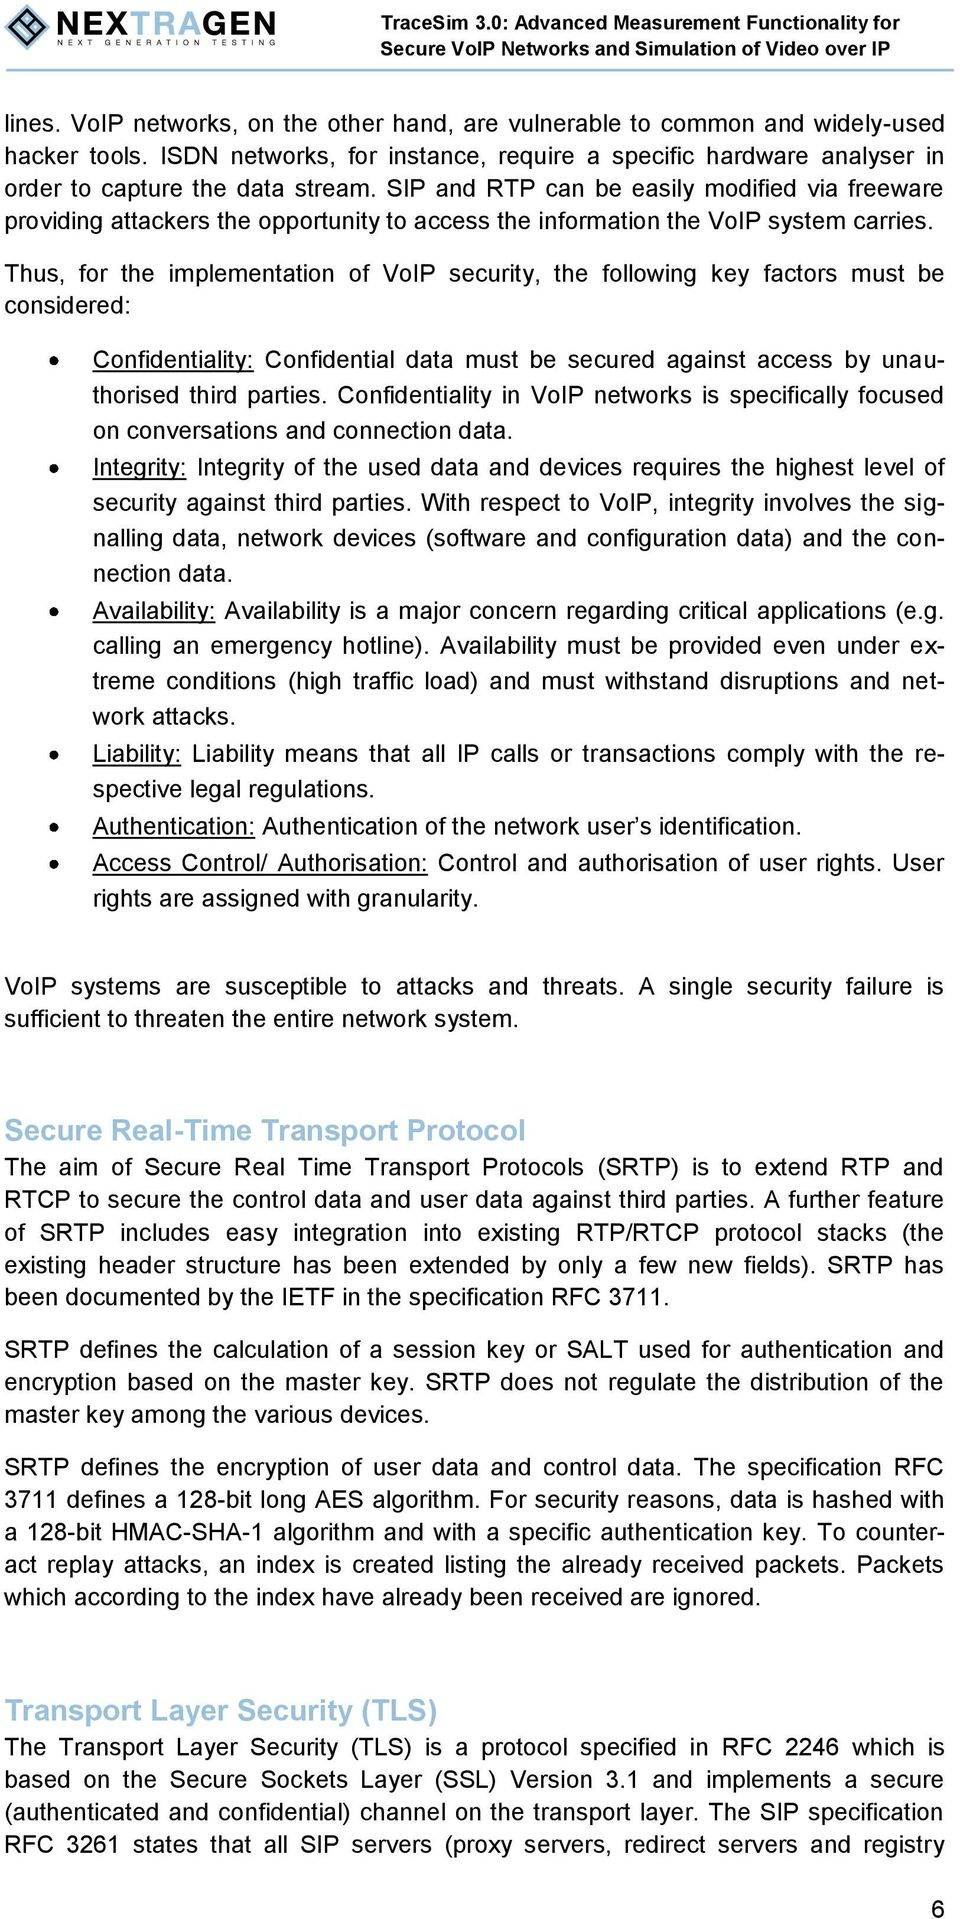 Thus, for the implementation of VoIP security, the following key factors must be considered: Confidentiality: Confidential data must be secured against access by unauthorised third parties.